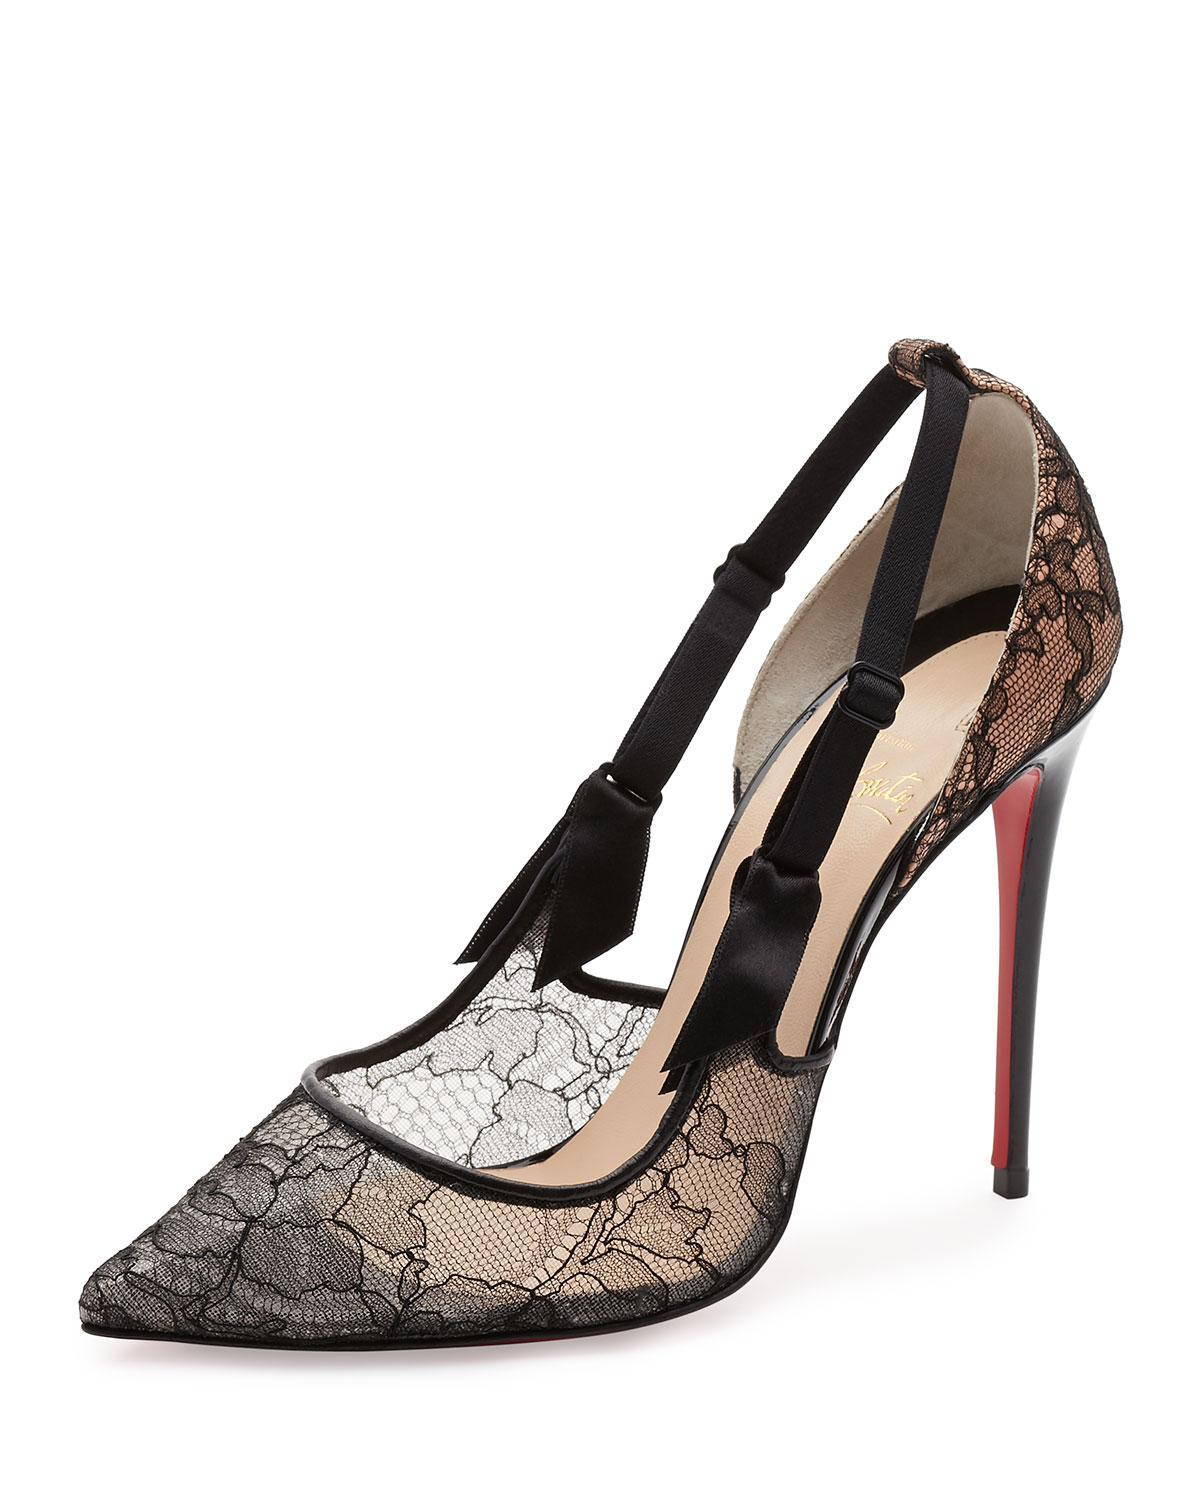 85325c3507f Lyst - Christian Louboutin Hot Jeanbi Lace 100mm Red Sole Pump in Black